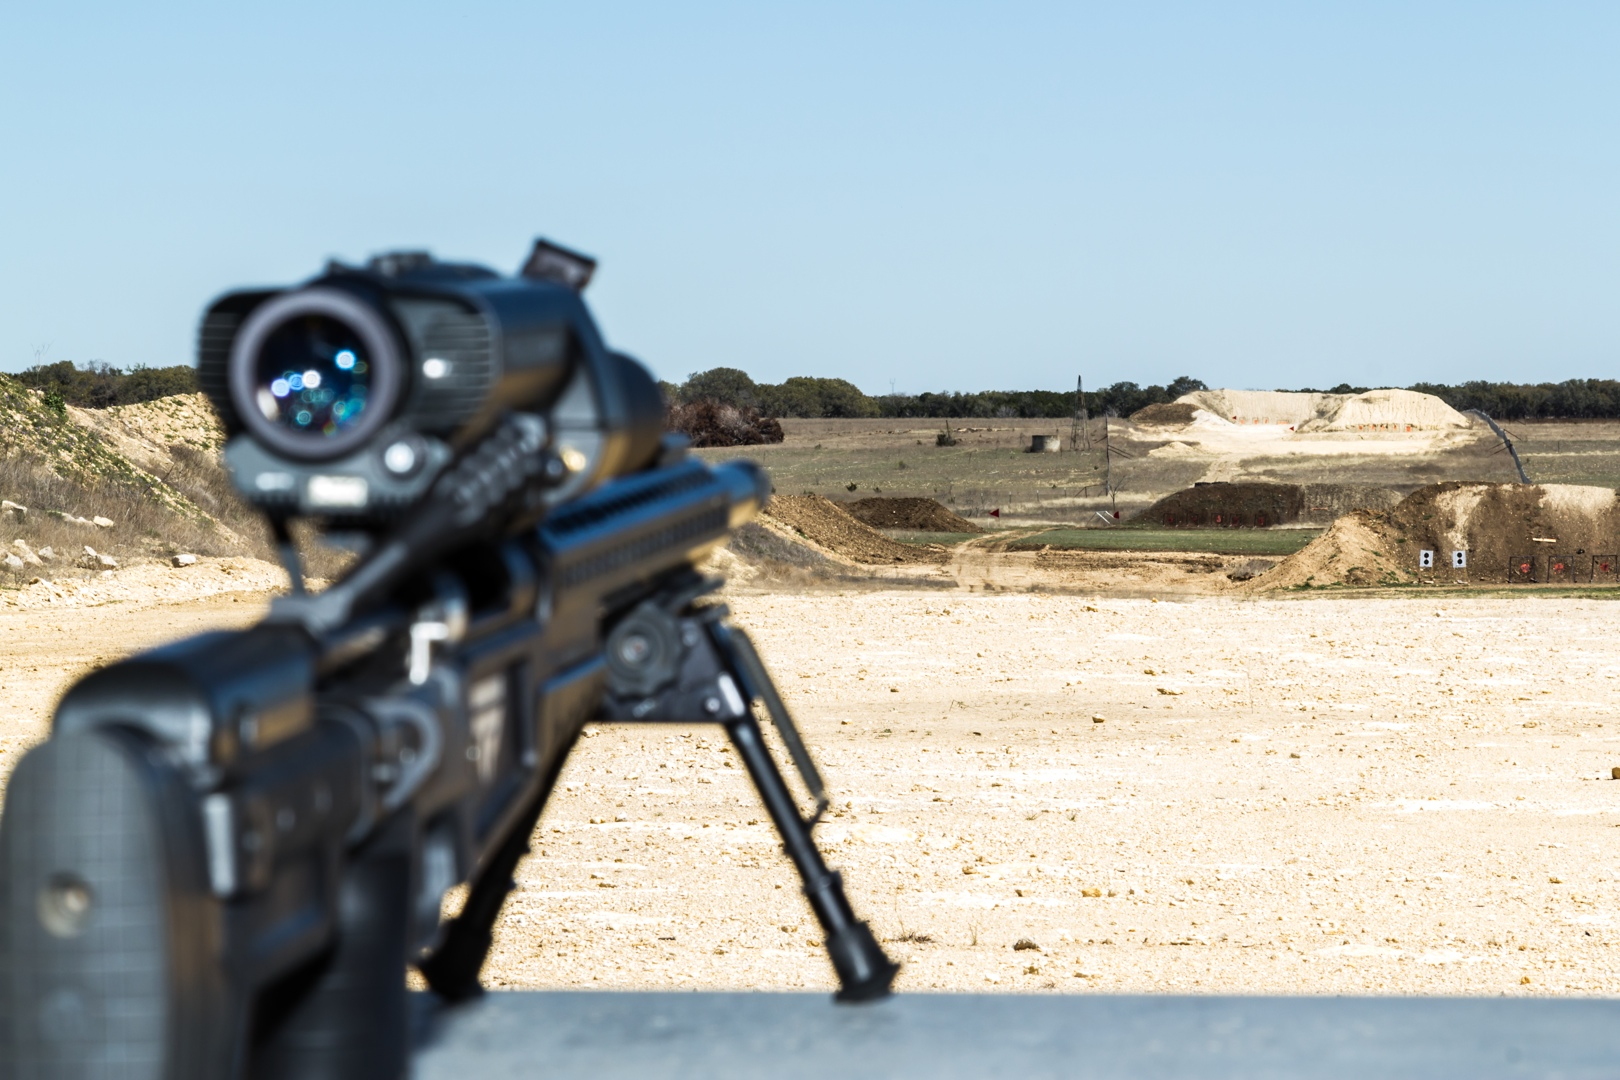 A view downrange, showing 250 yard, 500 yard, 750 yard, and 1000 yard target emplacements. At 128mm equivalent zoom, our camera's lens foreshortens the distance, making the targets appear much, much closer than they do to the naked eye.